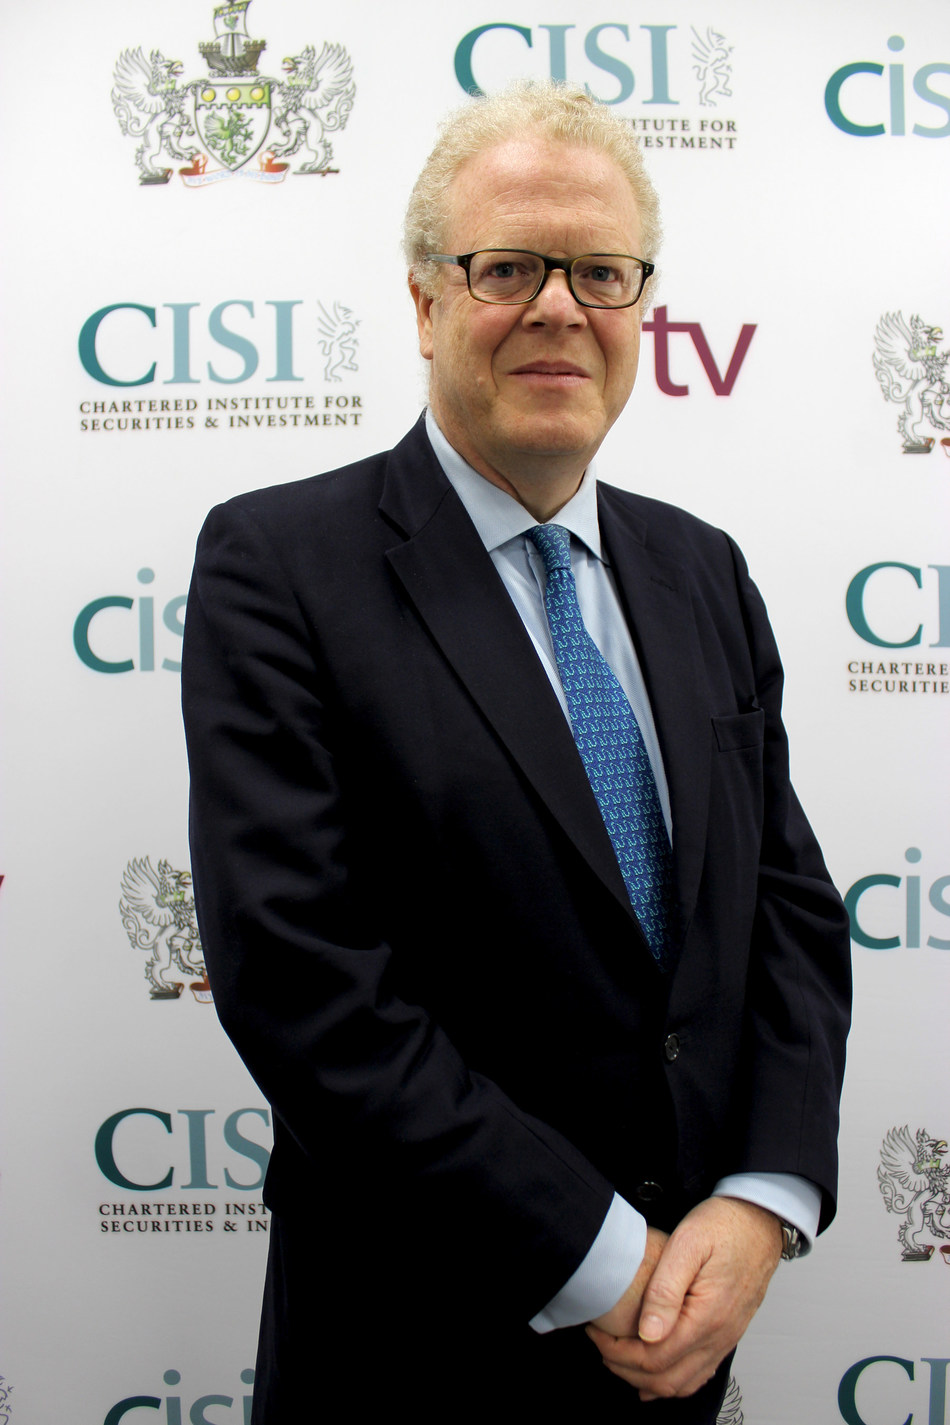 Michael Cole-Fontayn, Chairman, Chartered Institute for Securities & Investment (CISI). (PRNewsfoto/CISI)